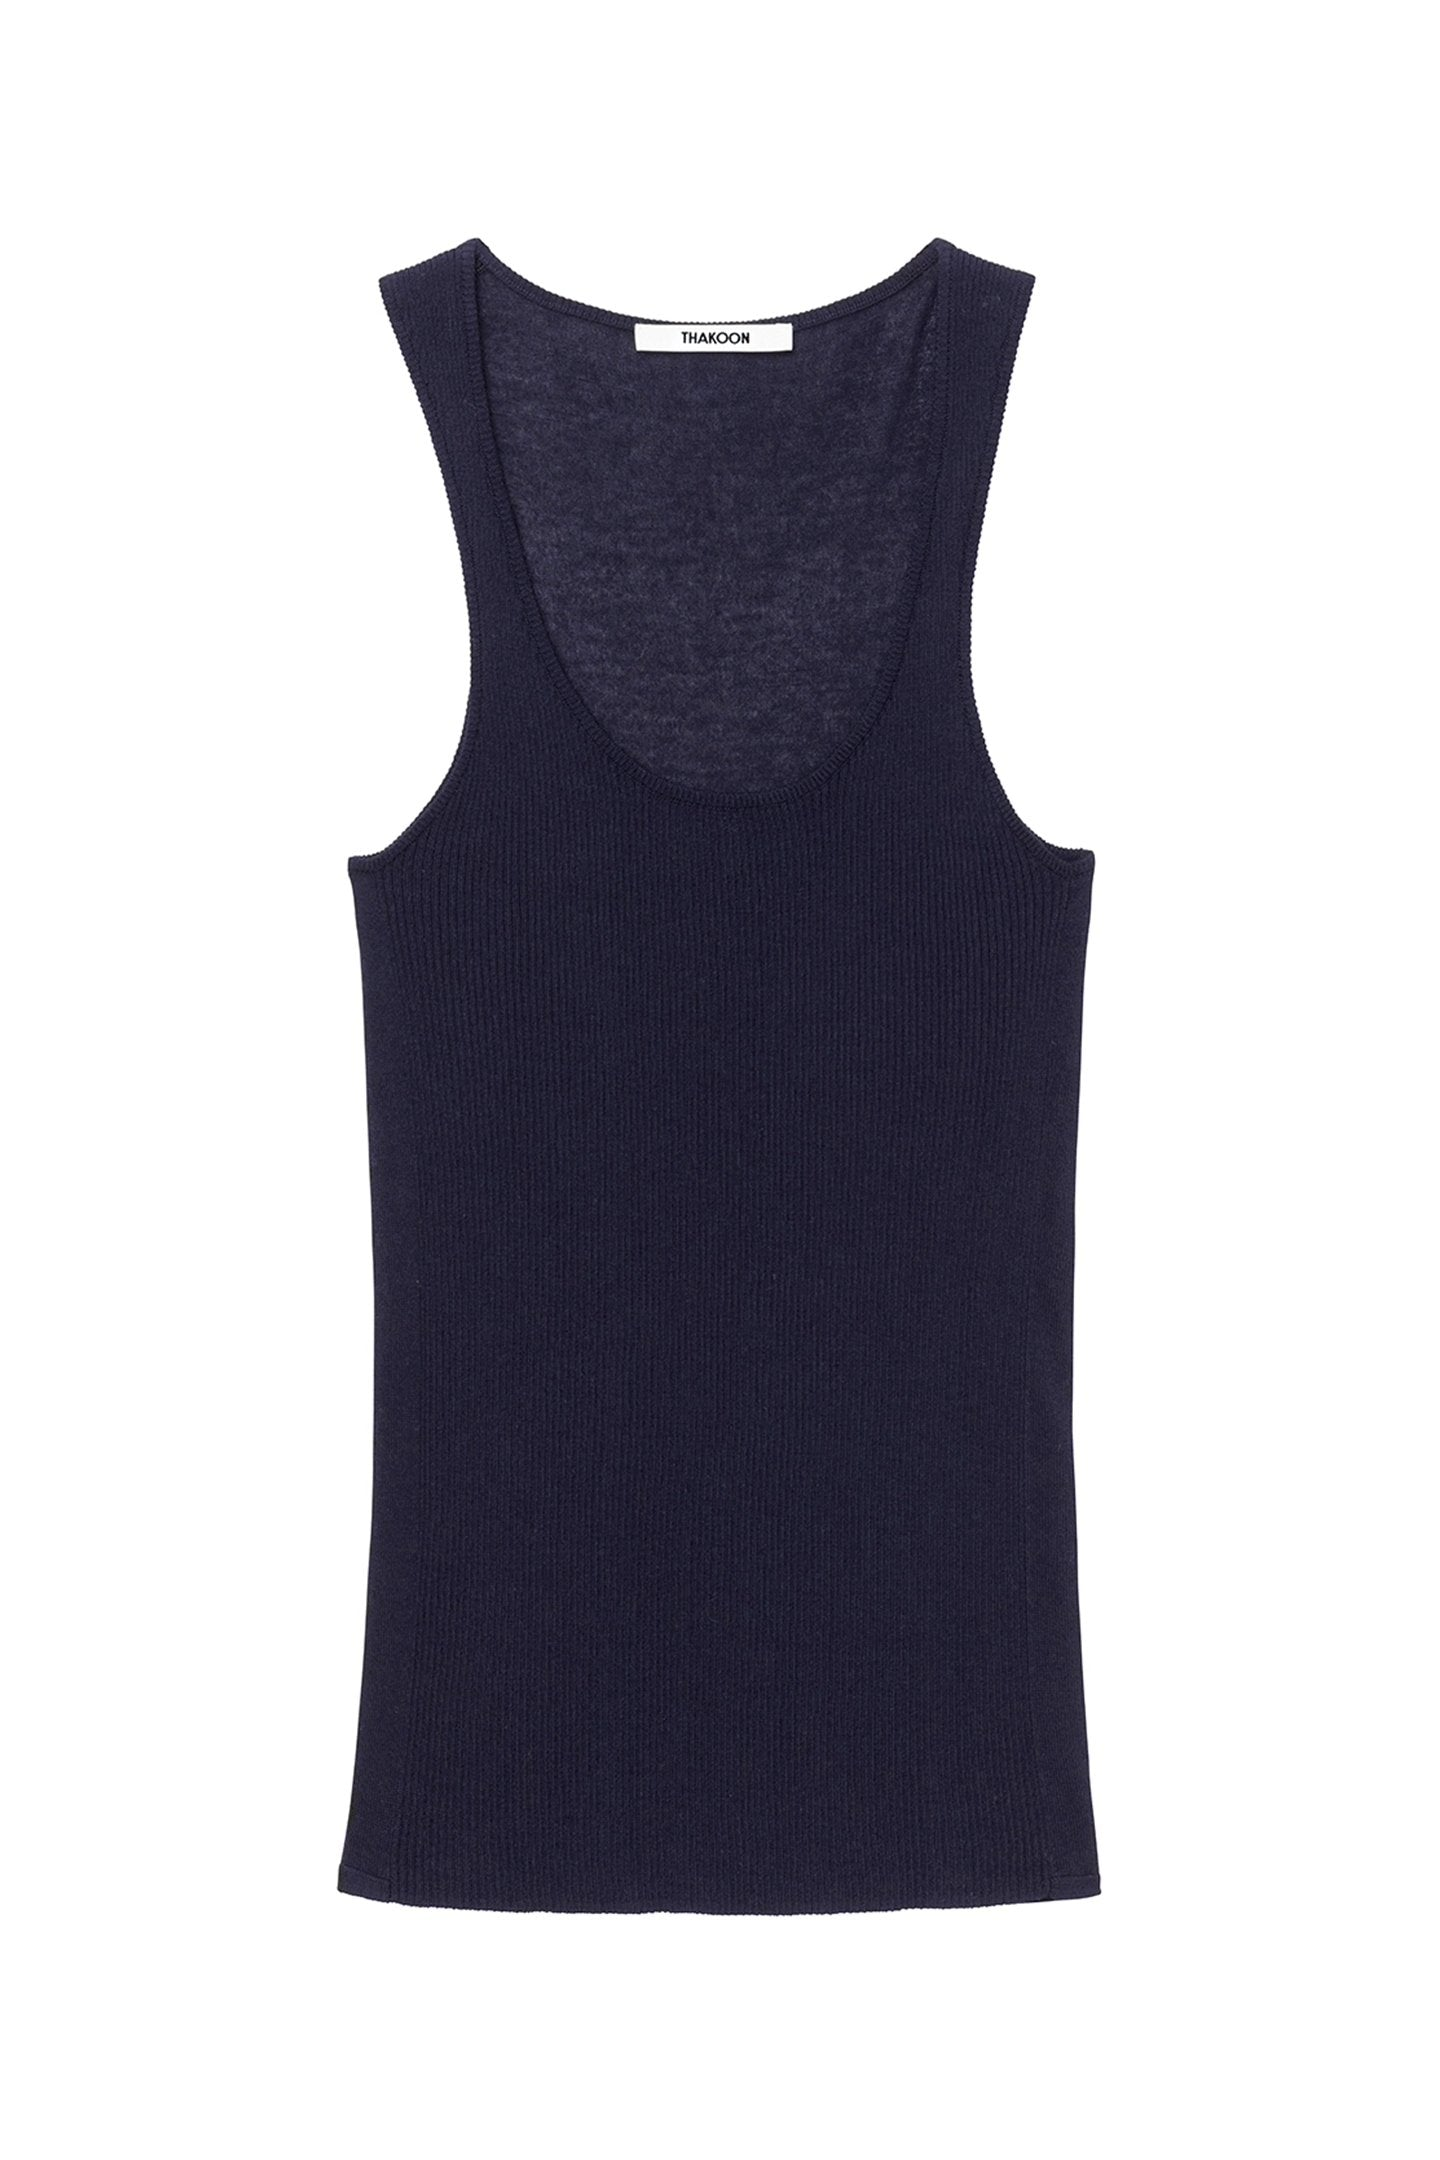 Stretch Knit Tank